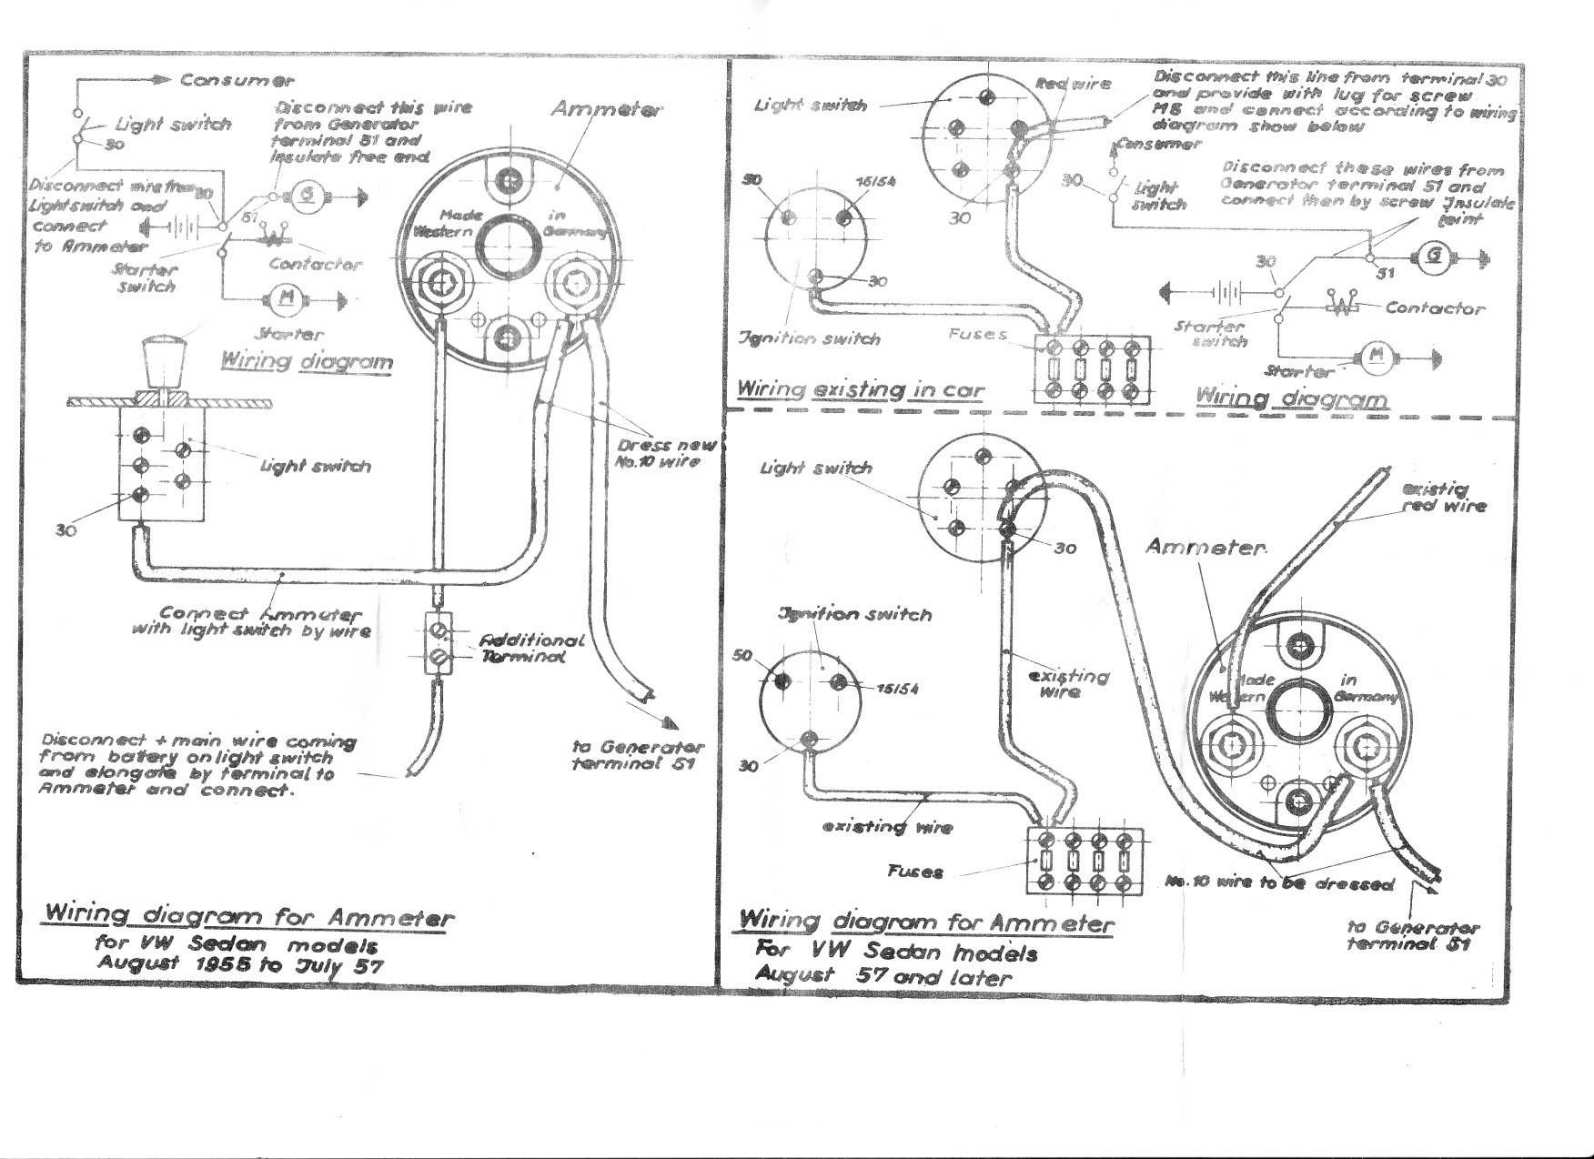 590656 thesamba com accessories memorabilia toys view topic how to vdo ammeter wiring diagram at aneh.co